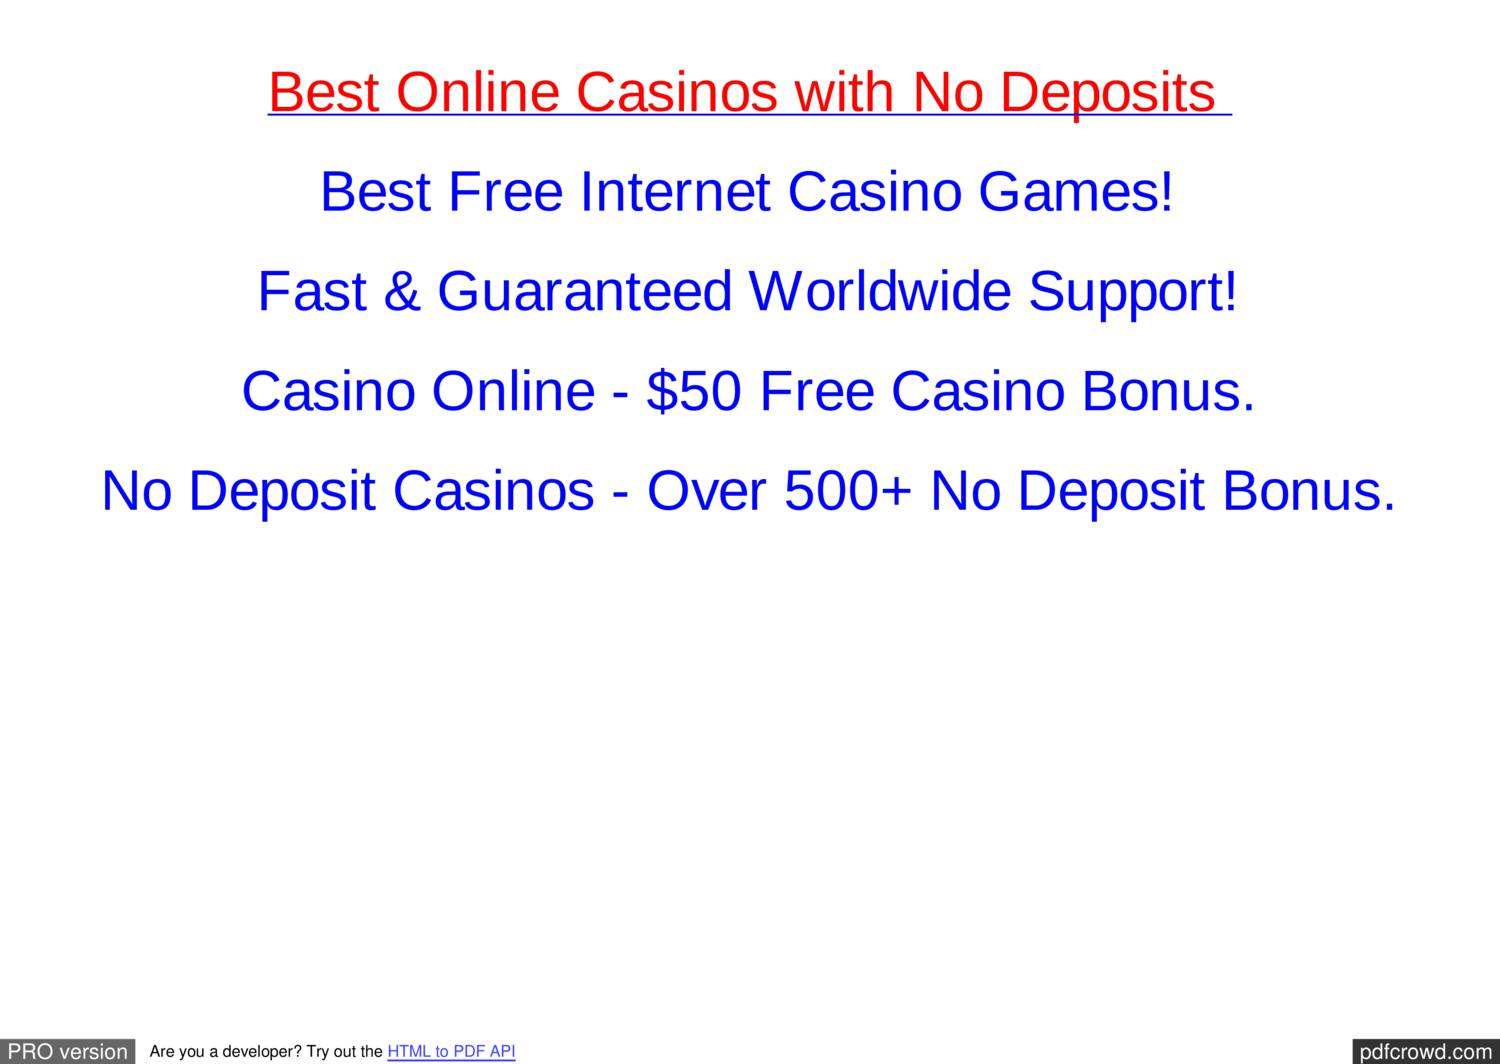 Usa Online Casinos That Accept Paypal